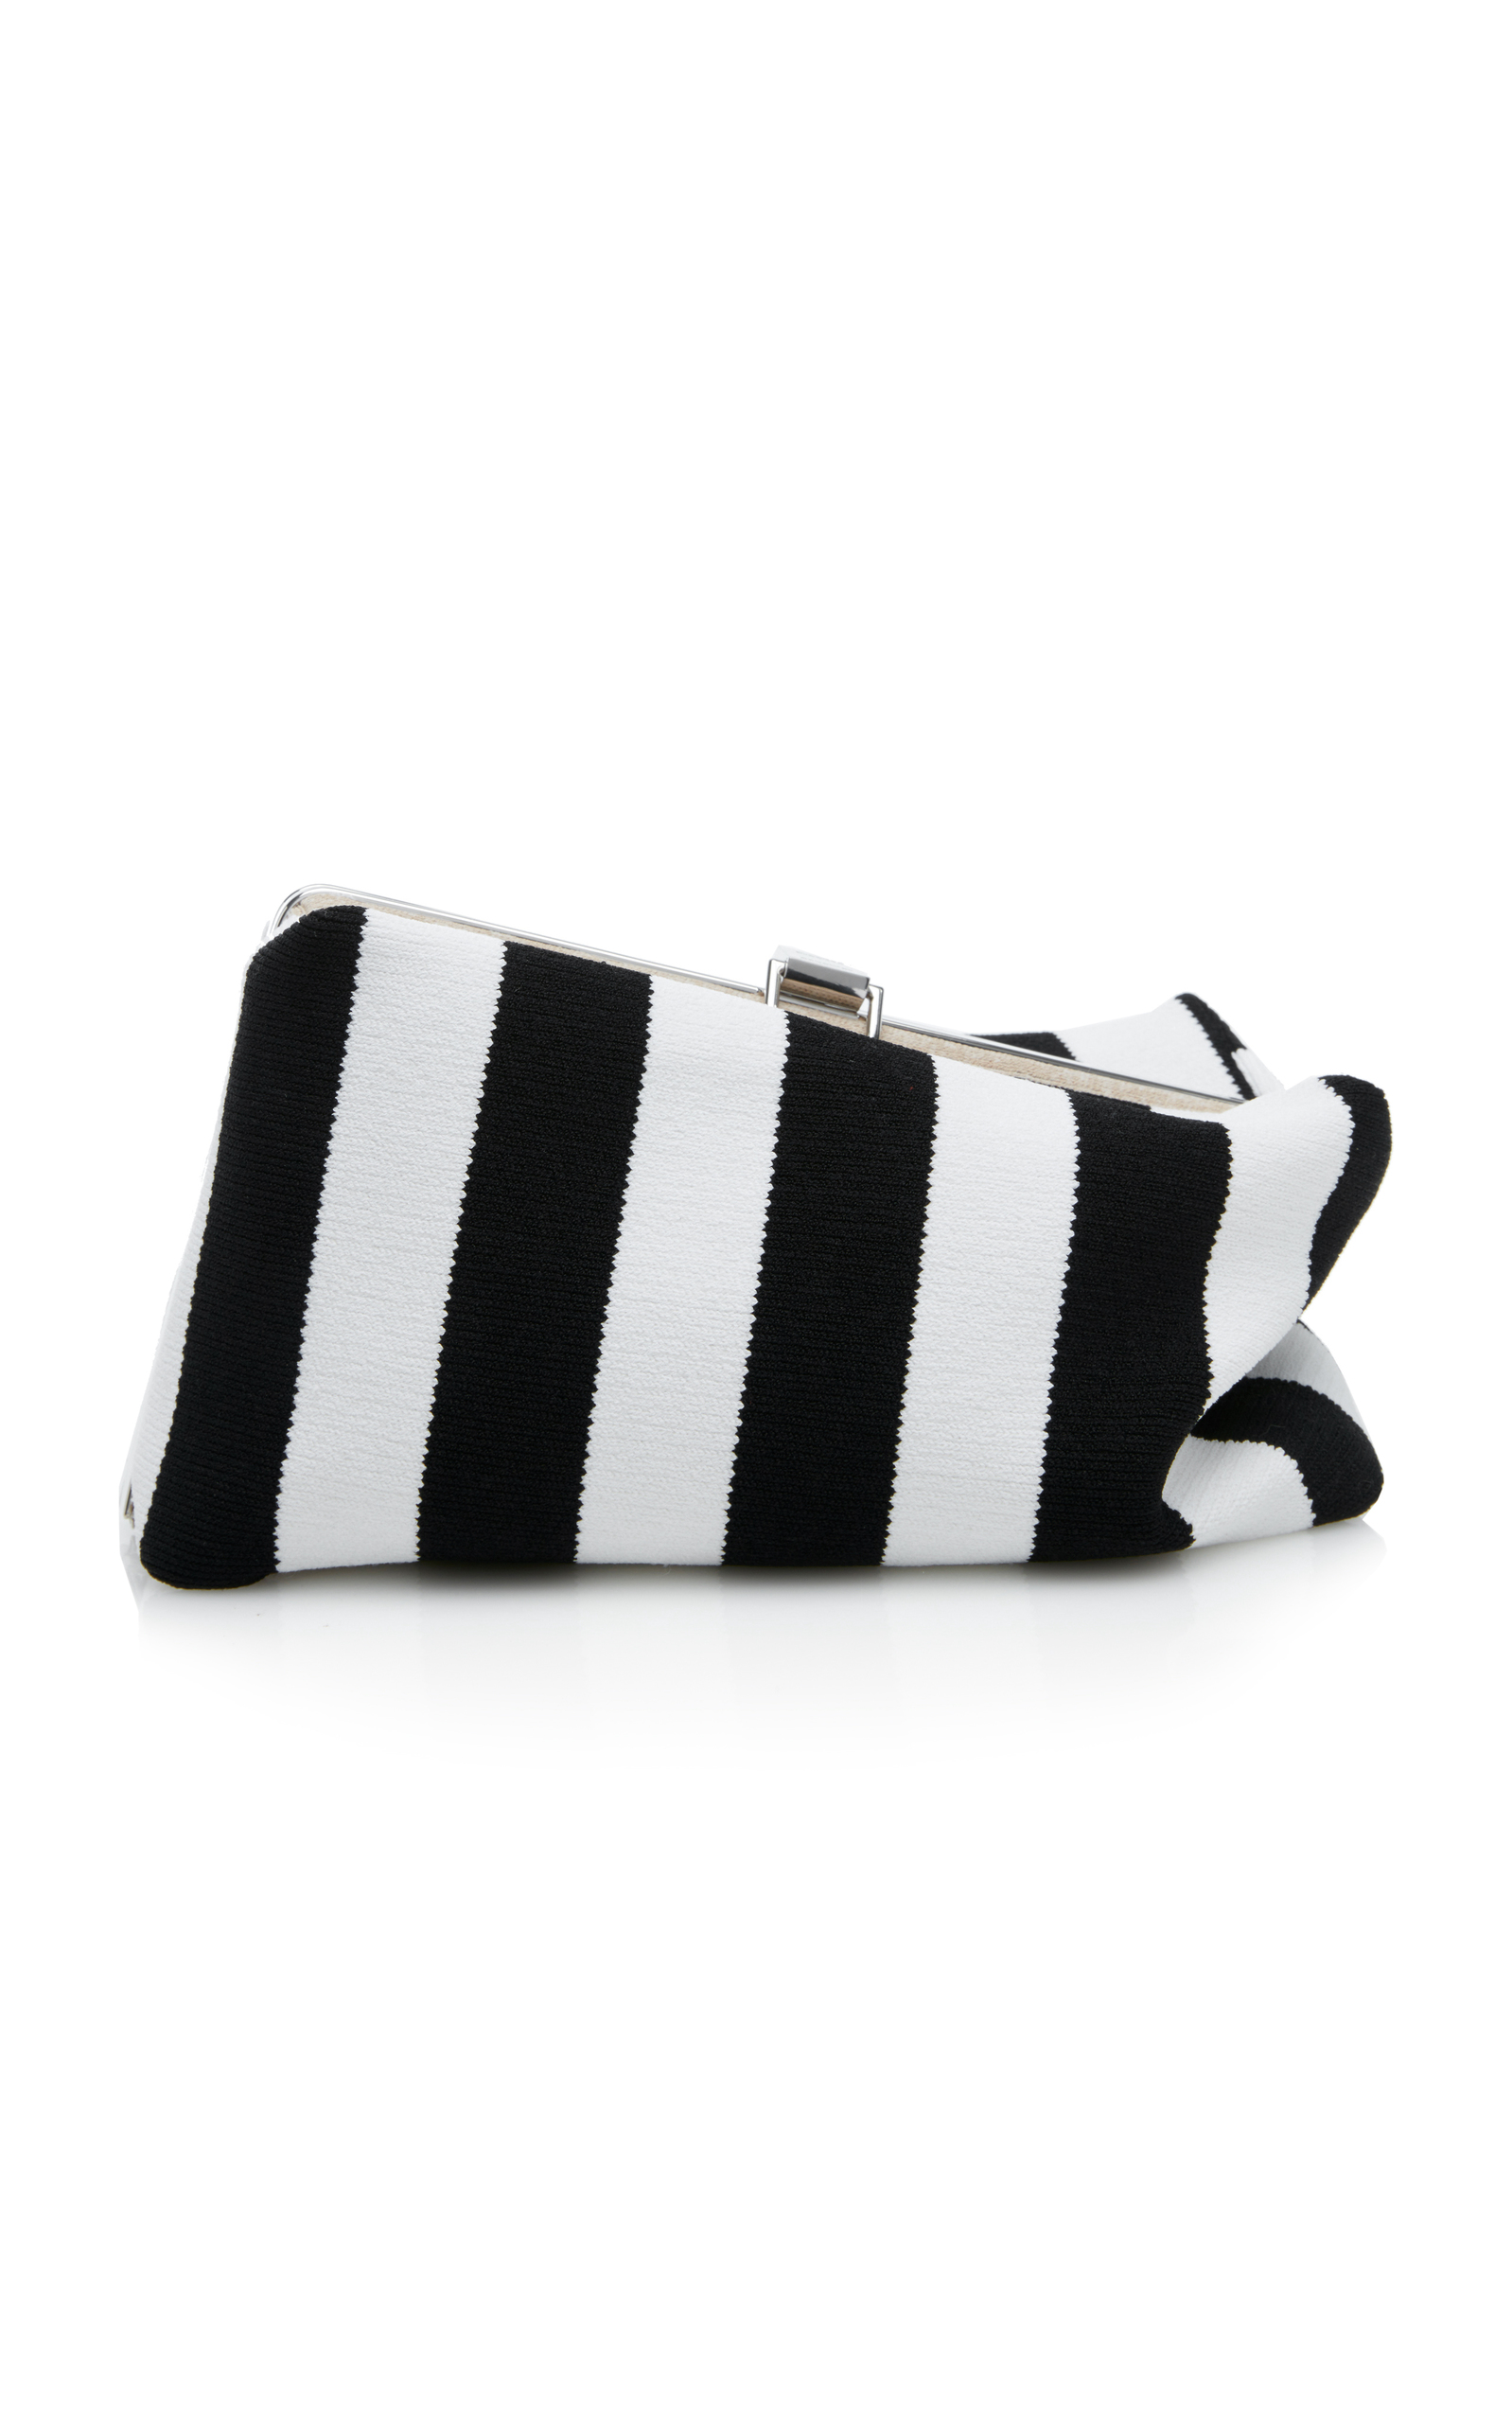 Proenza Schouler Frame Asymmetric Striped Canvas Clutch In Black